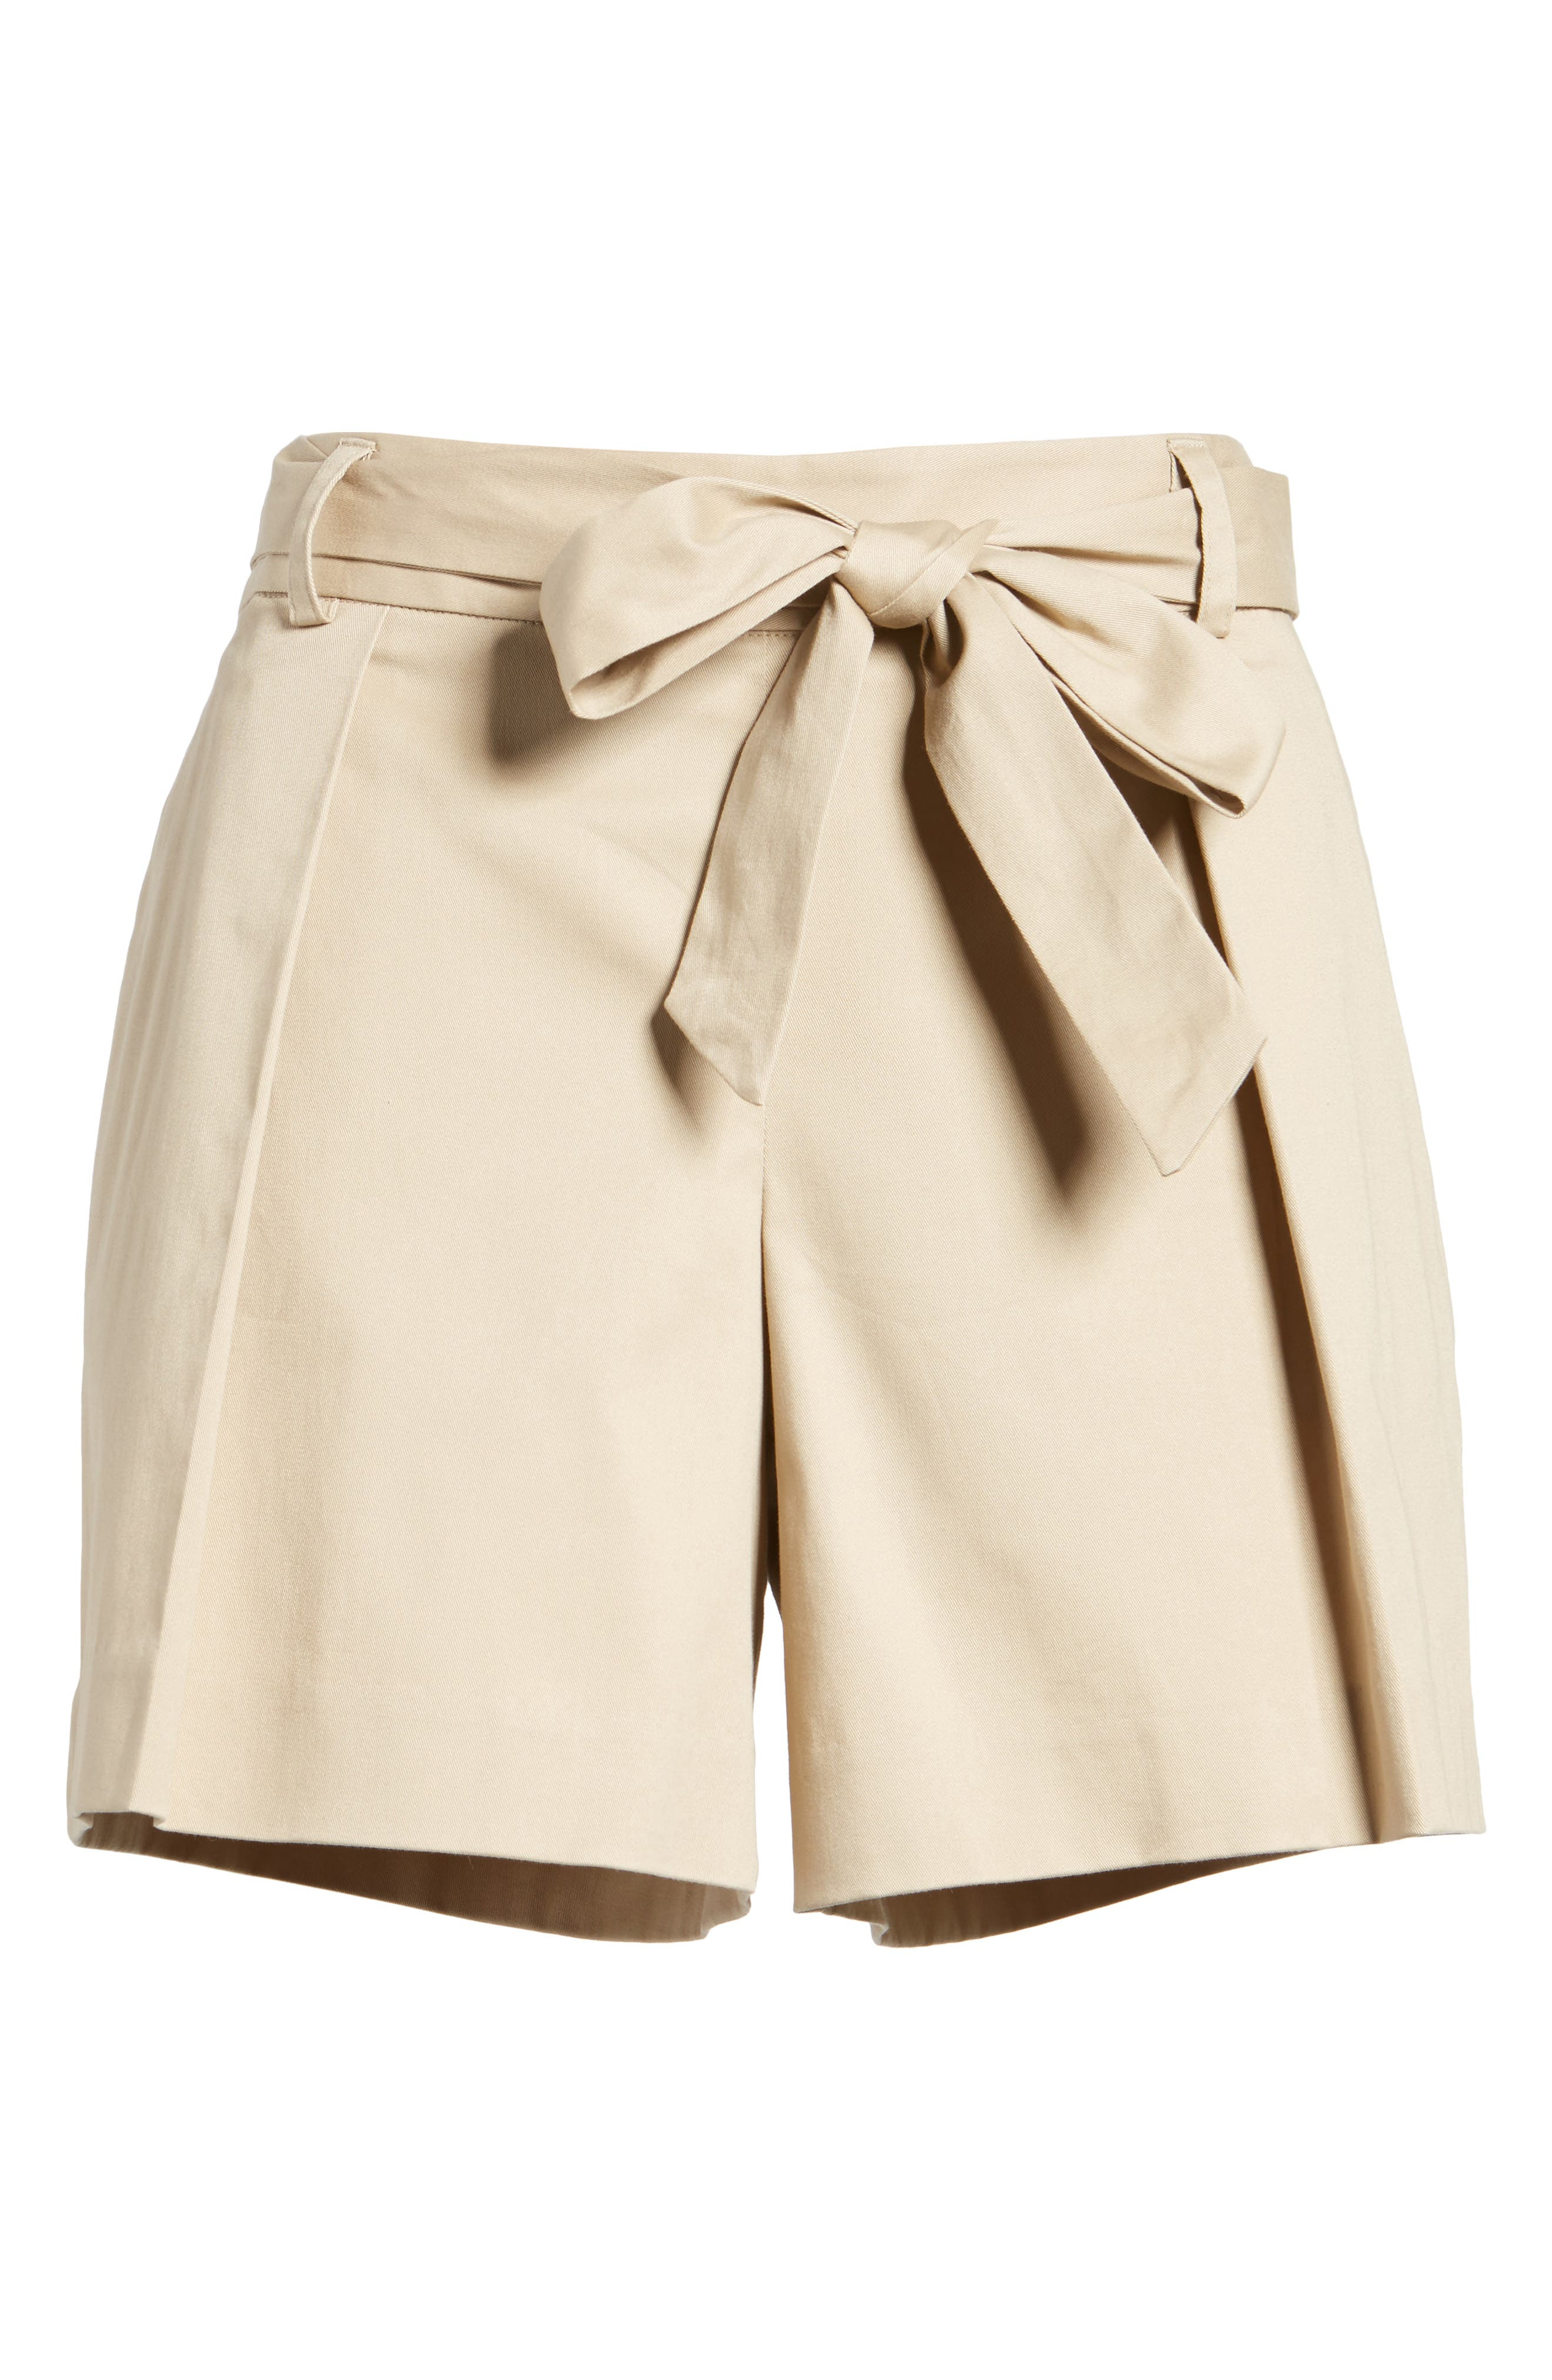 Pleated Twill Bow Front Shorts,                             Alternate thumbnail 6, color,                             235